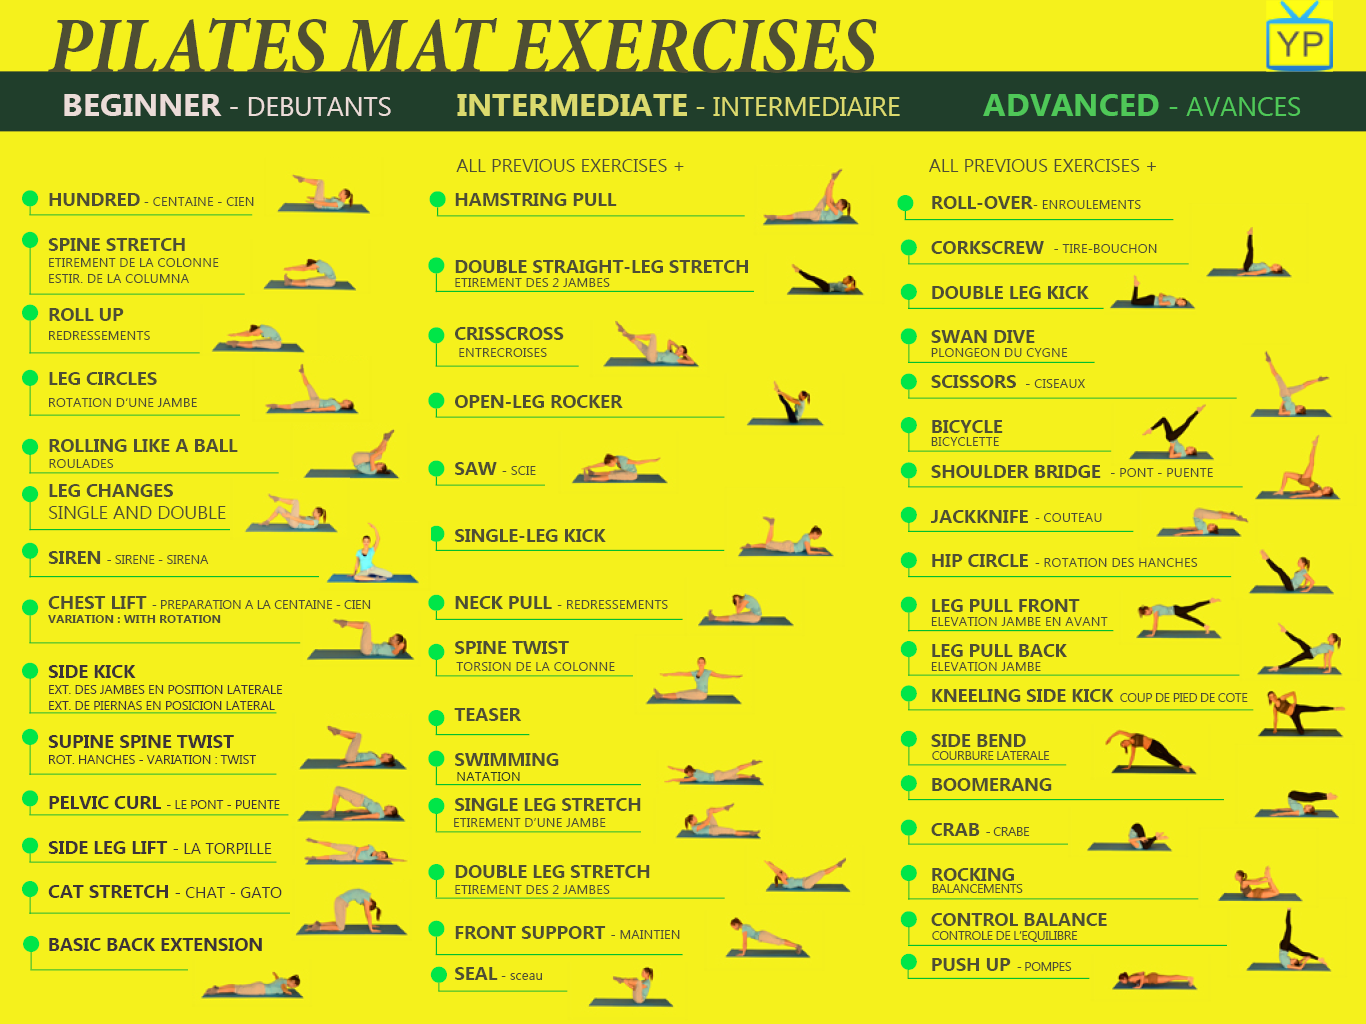 Pilates exercises chart exercises classes charts and lot pilates exercises chart exercises classes charts and lot information about yoga and pilates fandeluxe Images